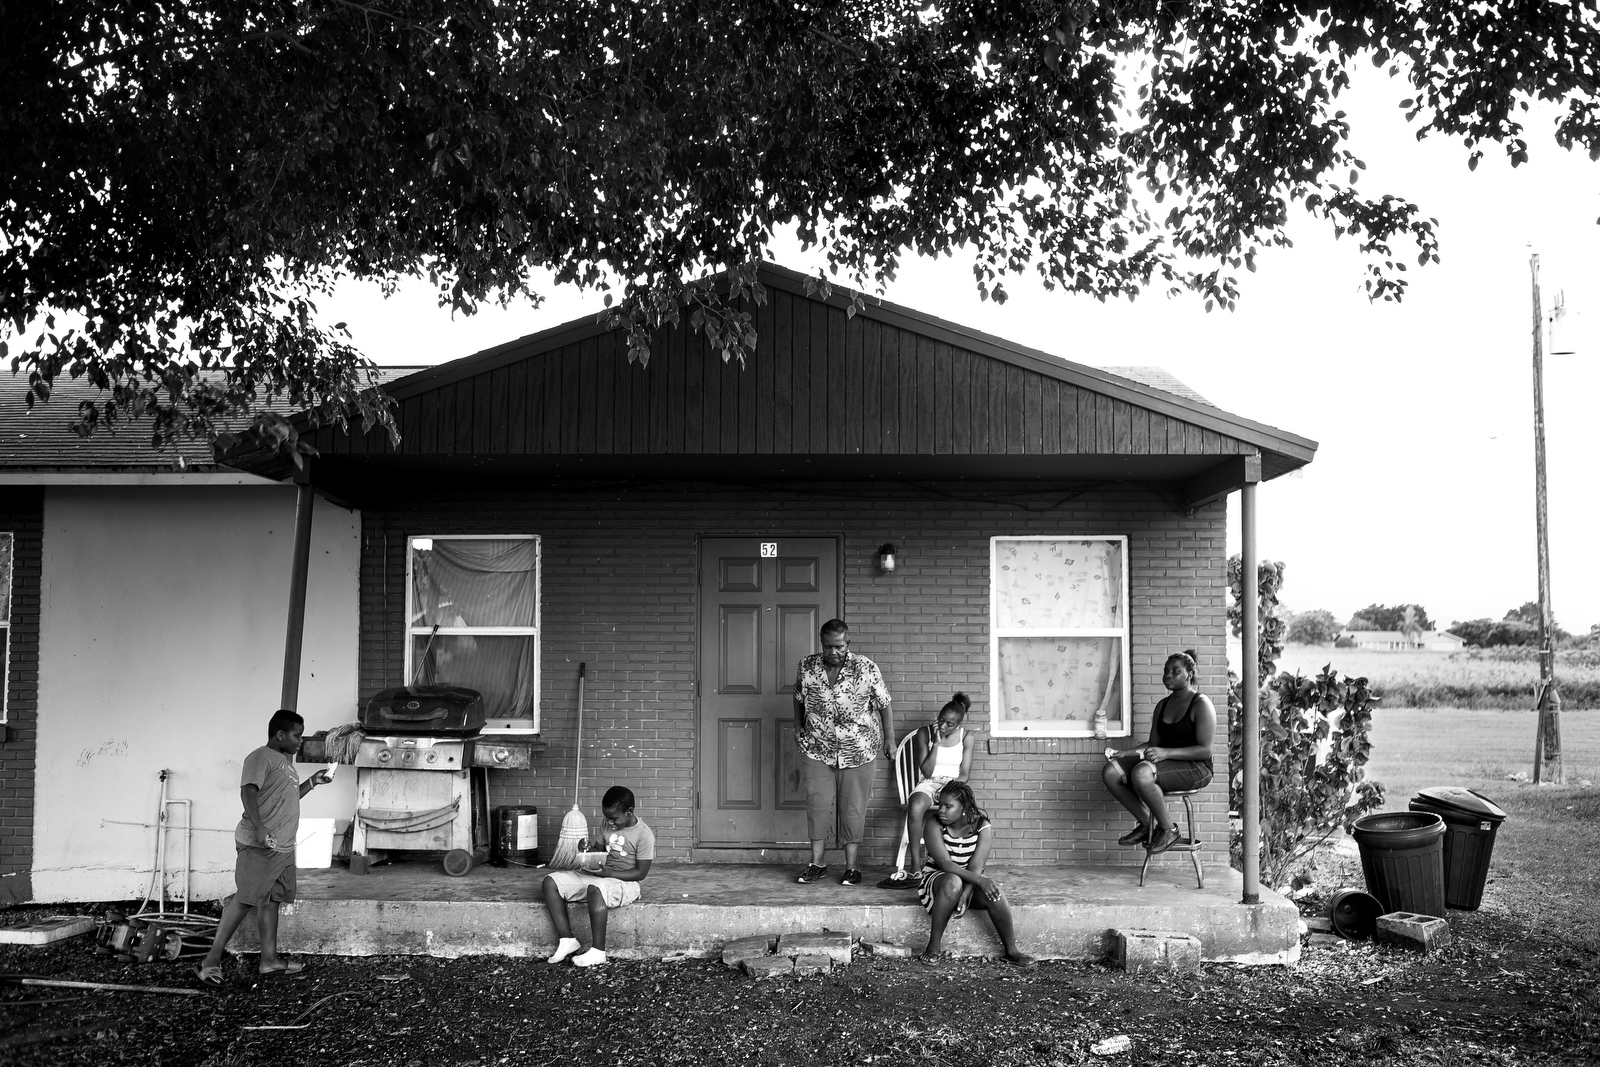 Imogene Davis leaves her house as her grandchildren and their friends sit on the porch. Imogene was a farmworker for the same company for 42 years. Her husband Jimmy Lee Davis still works on a farm but at the age of 64, he will not be able to provide that income for the family much longer.